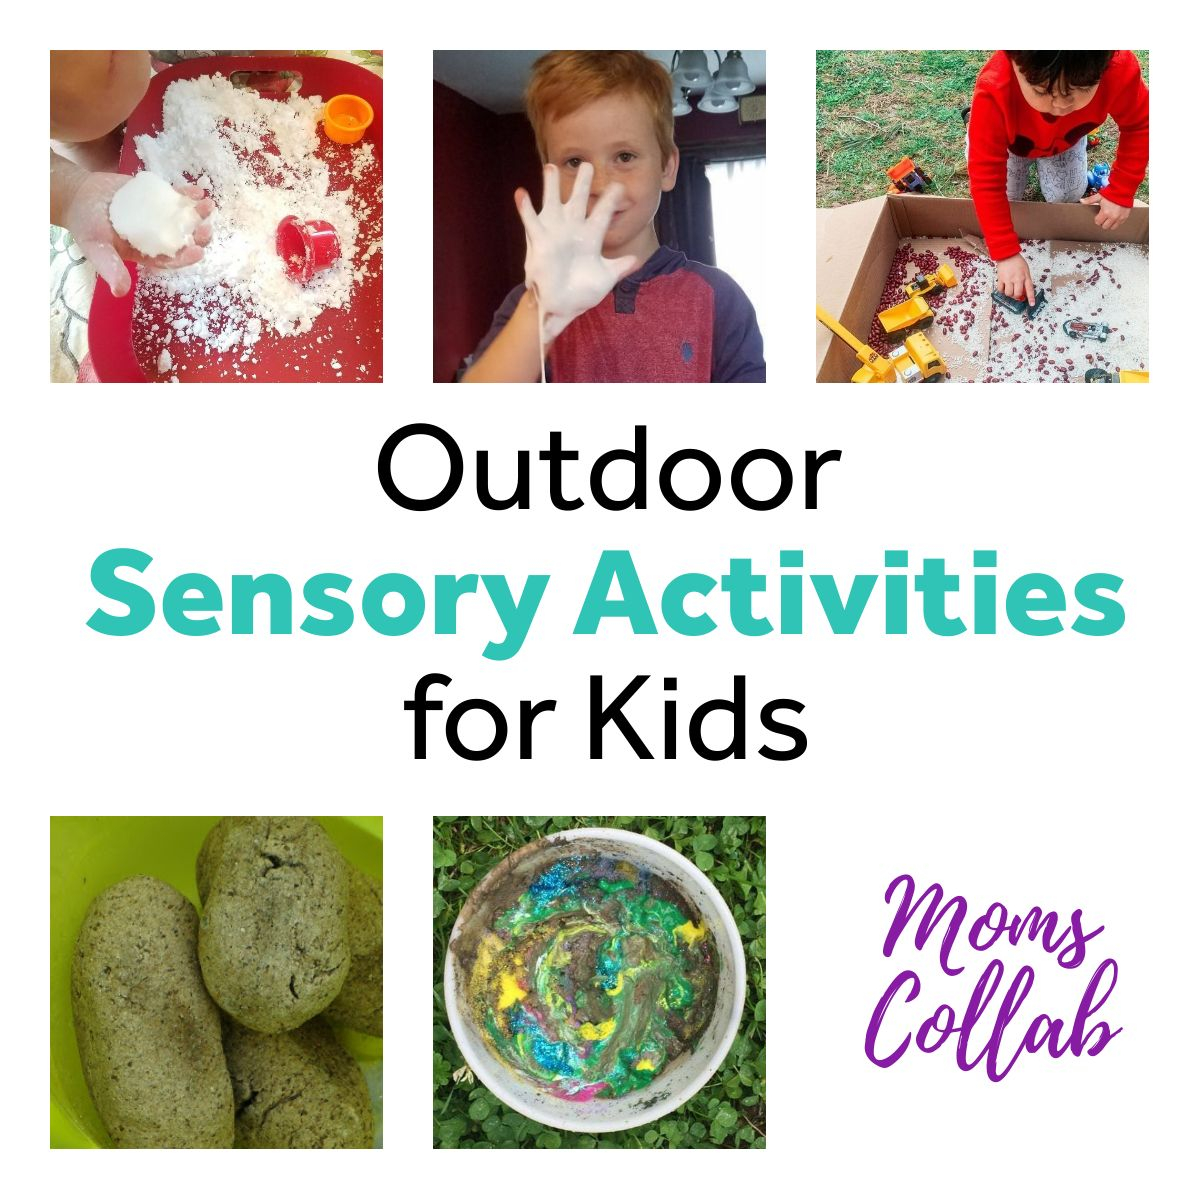 Outdoor Sensory Activities